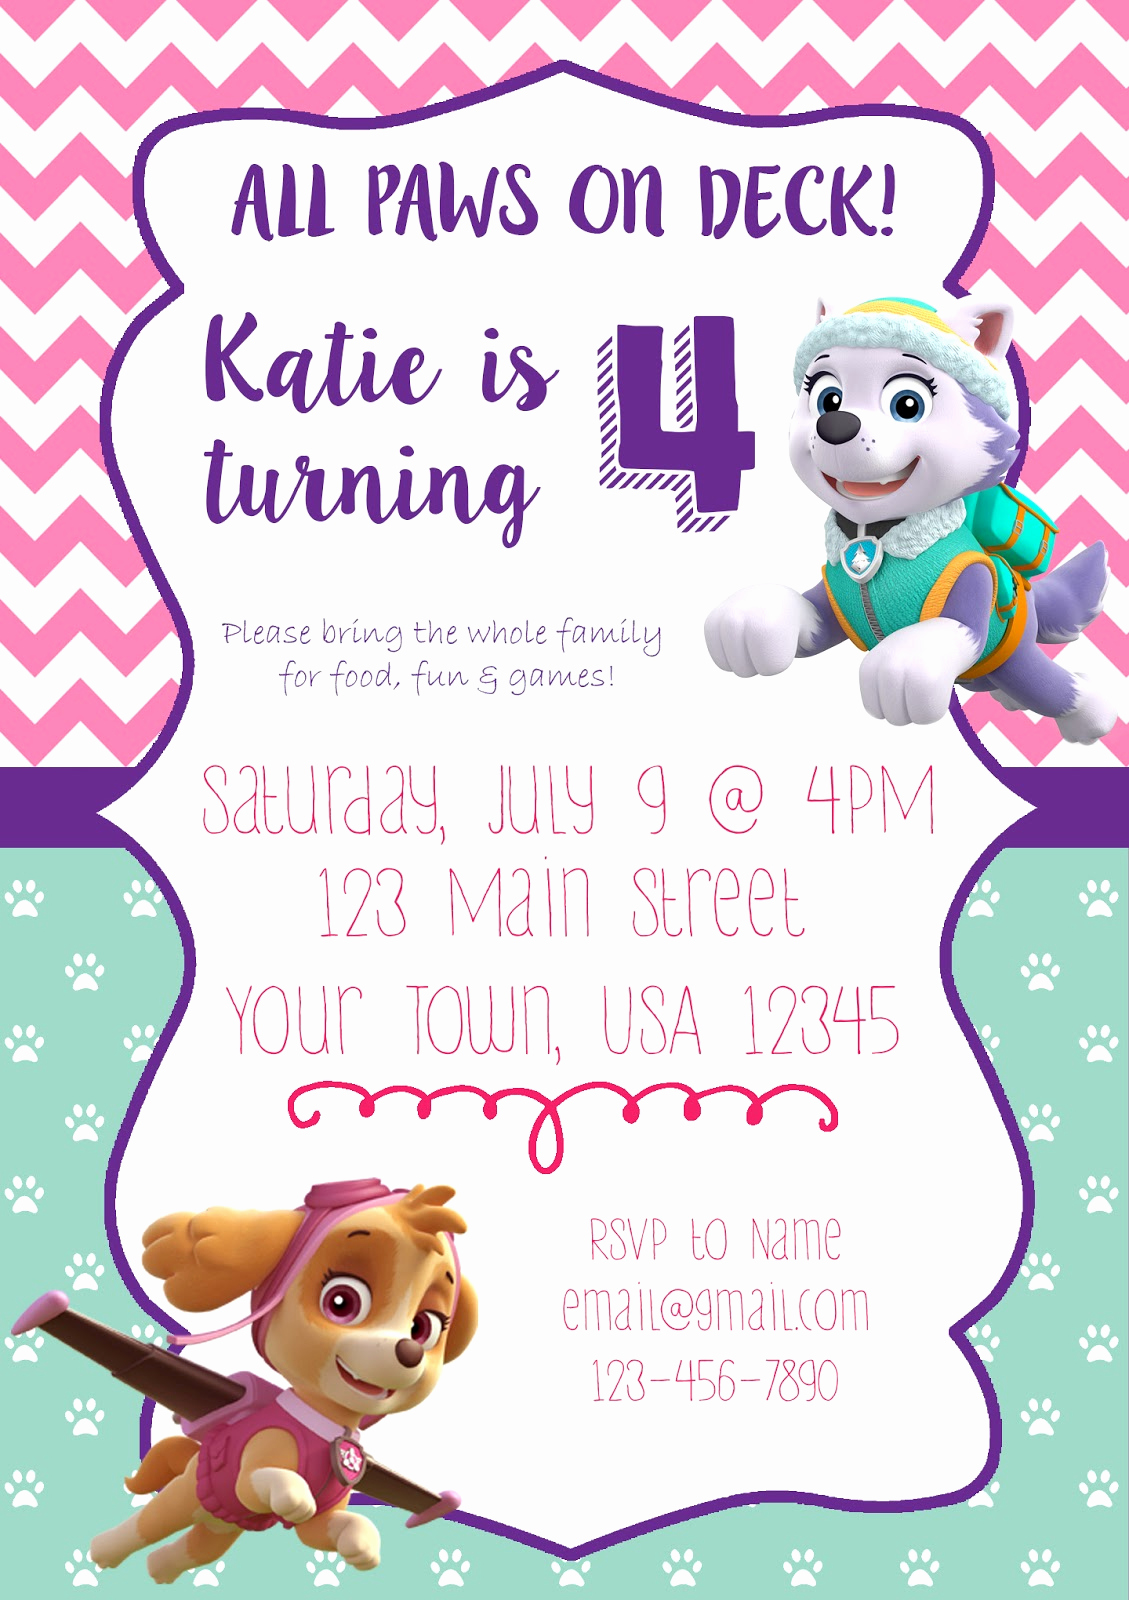 Paw Patrol Birthday Invitation Best Of Handmade by Holaday Girl themed Paw Patrol Party